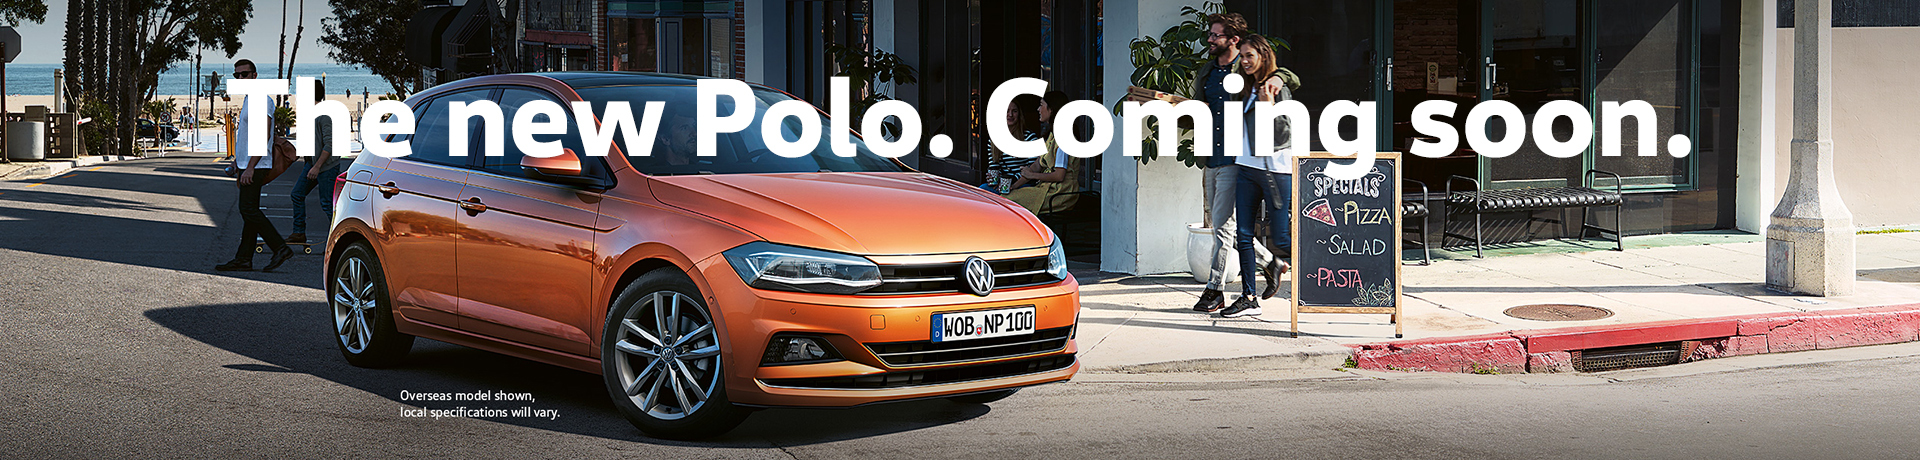 New Polo - Coming Soon